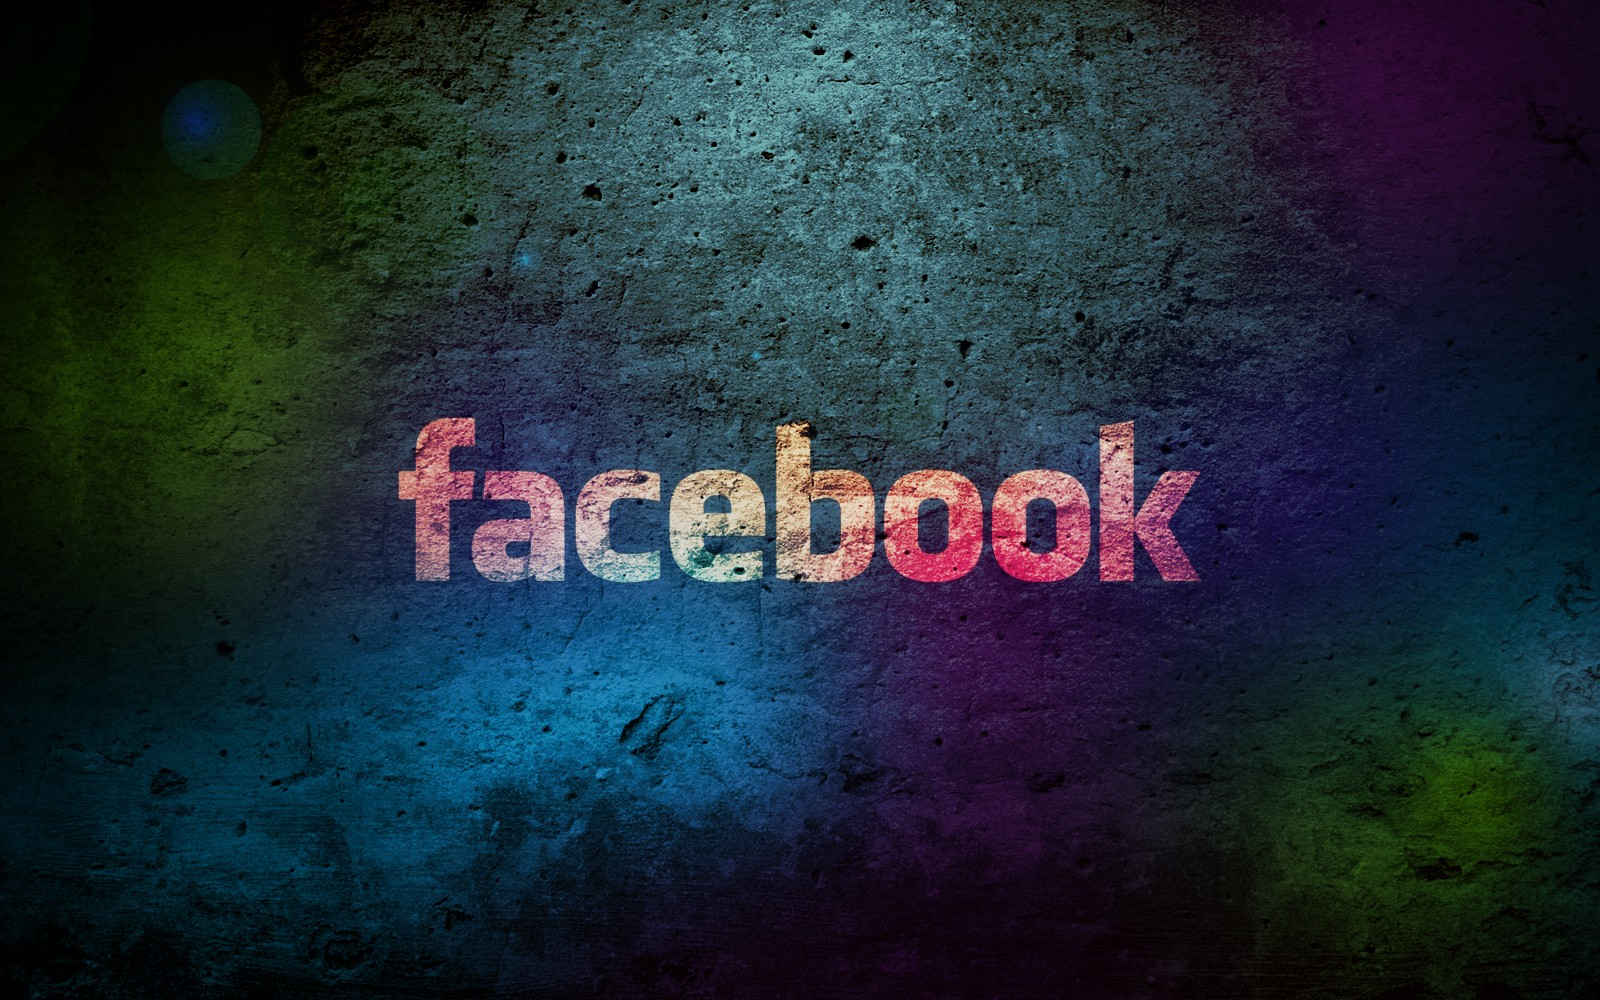 HD Wallpapers For Facebook